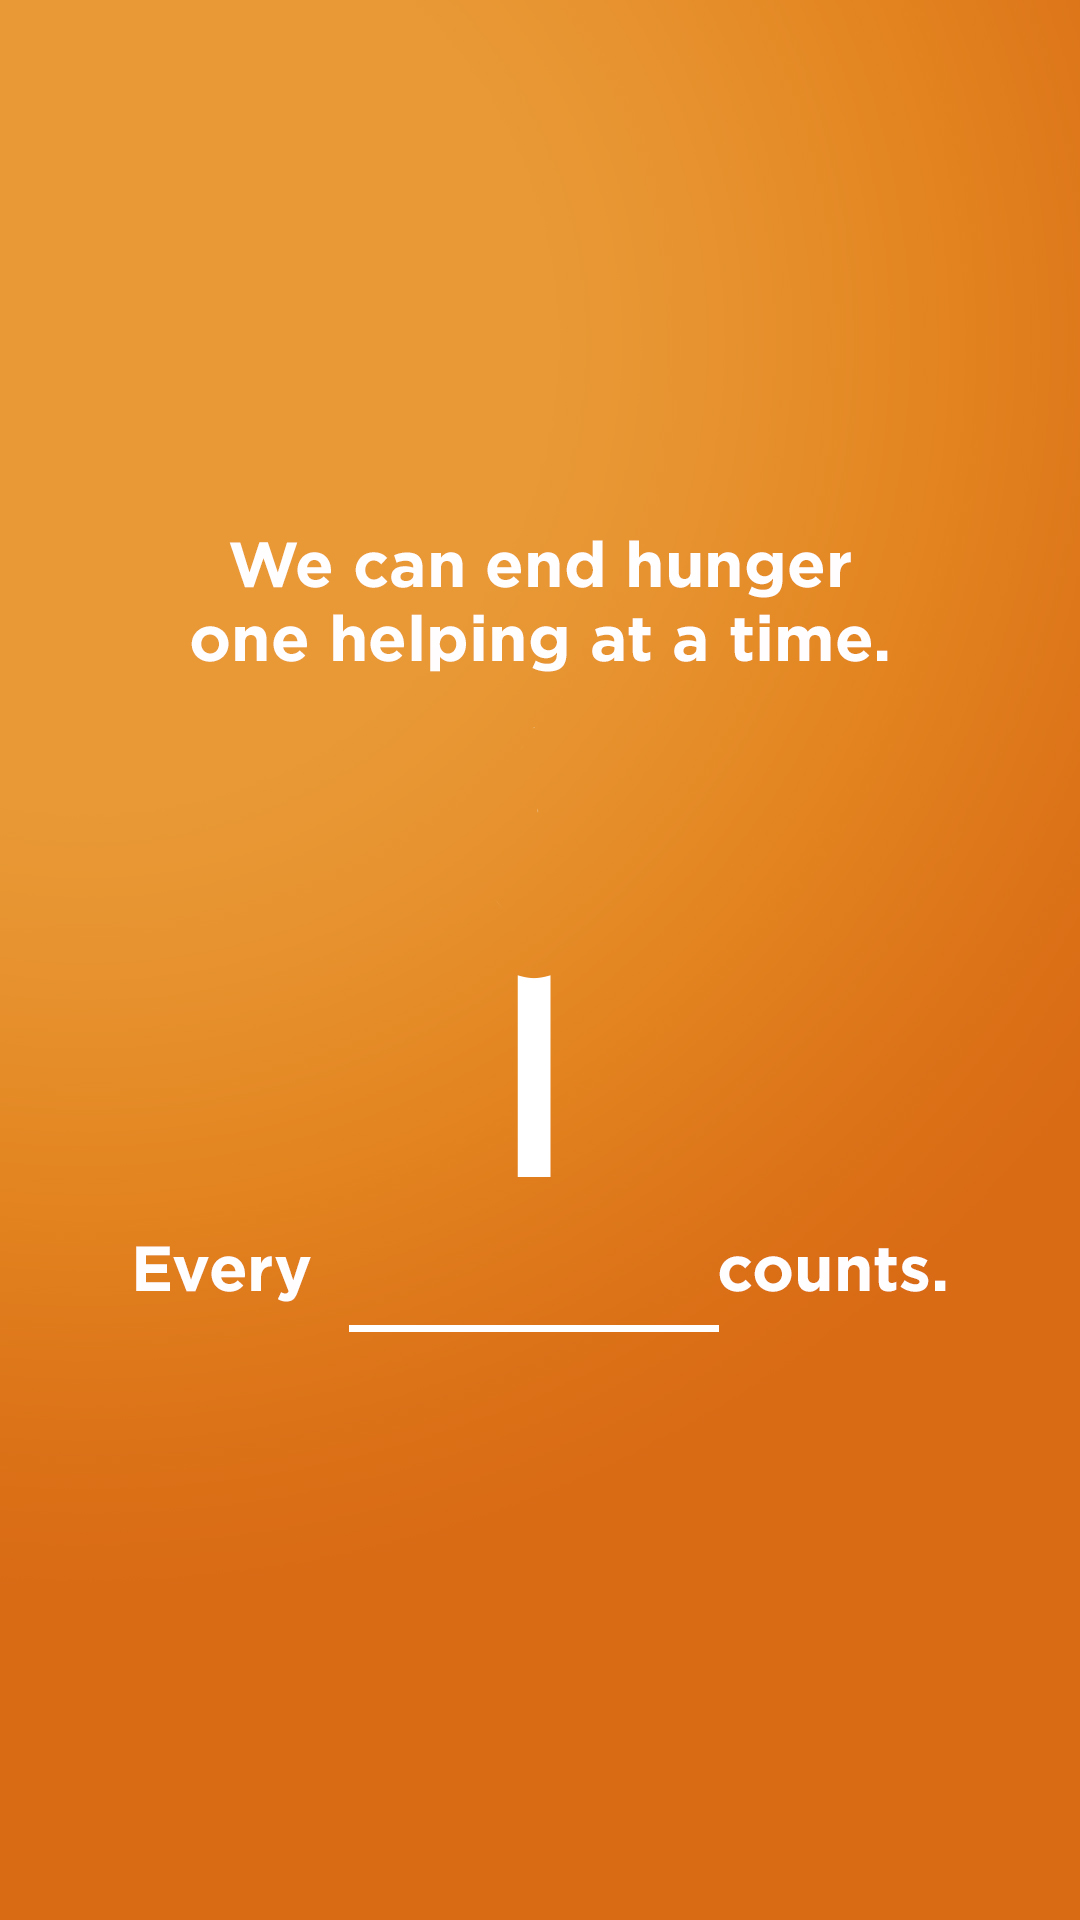 We can end hunger - Every 1 counts